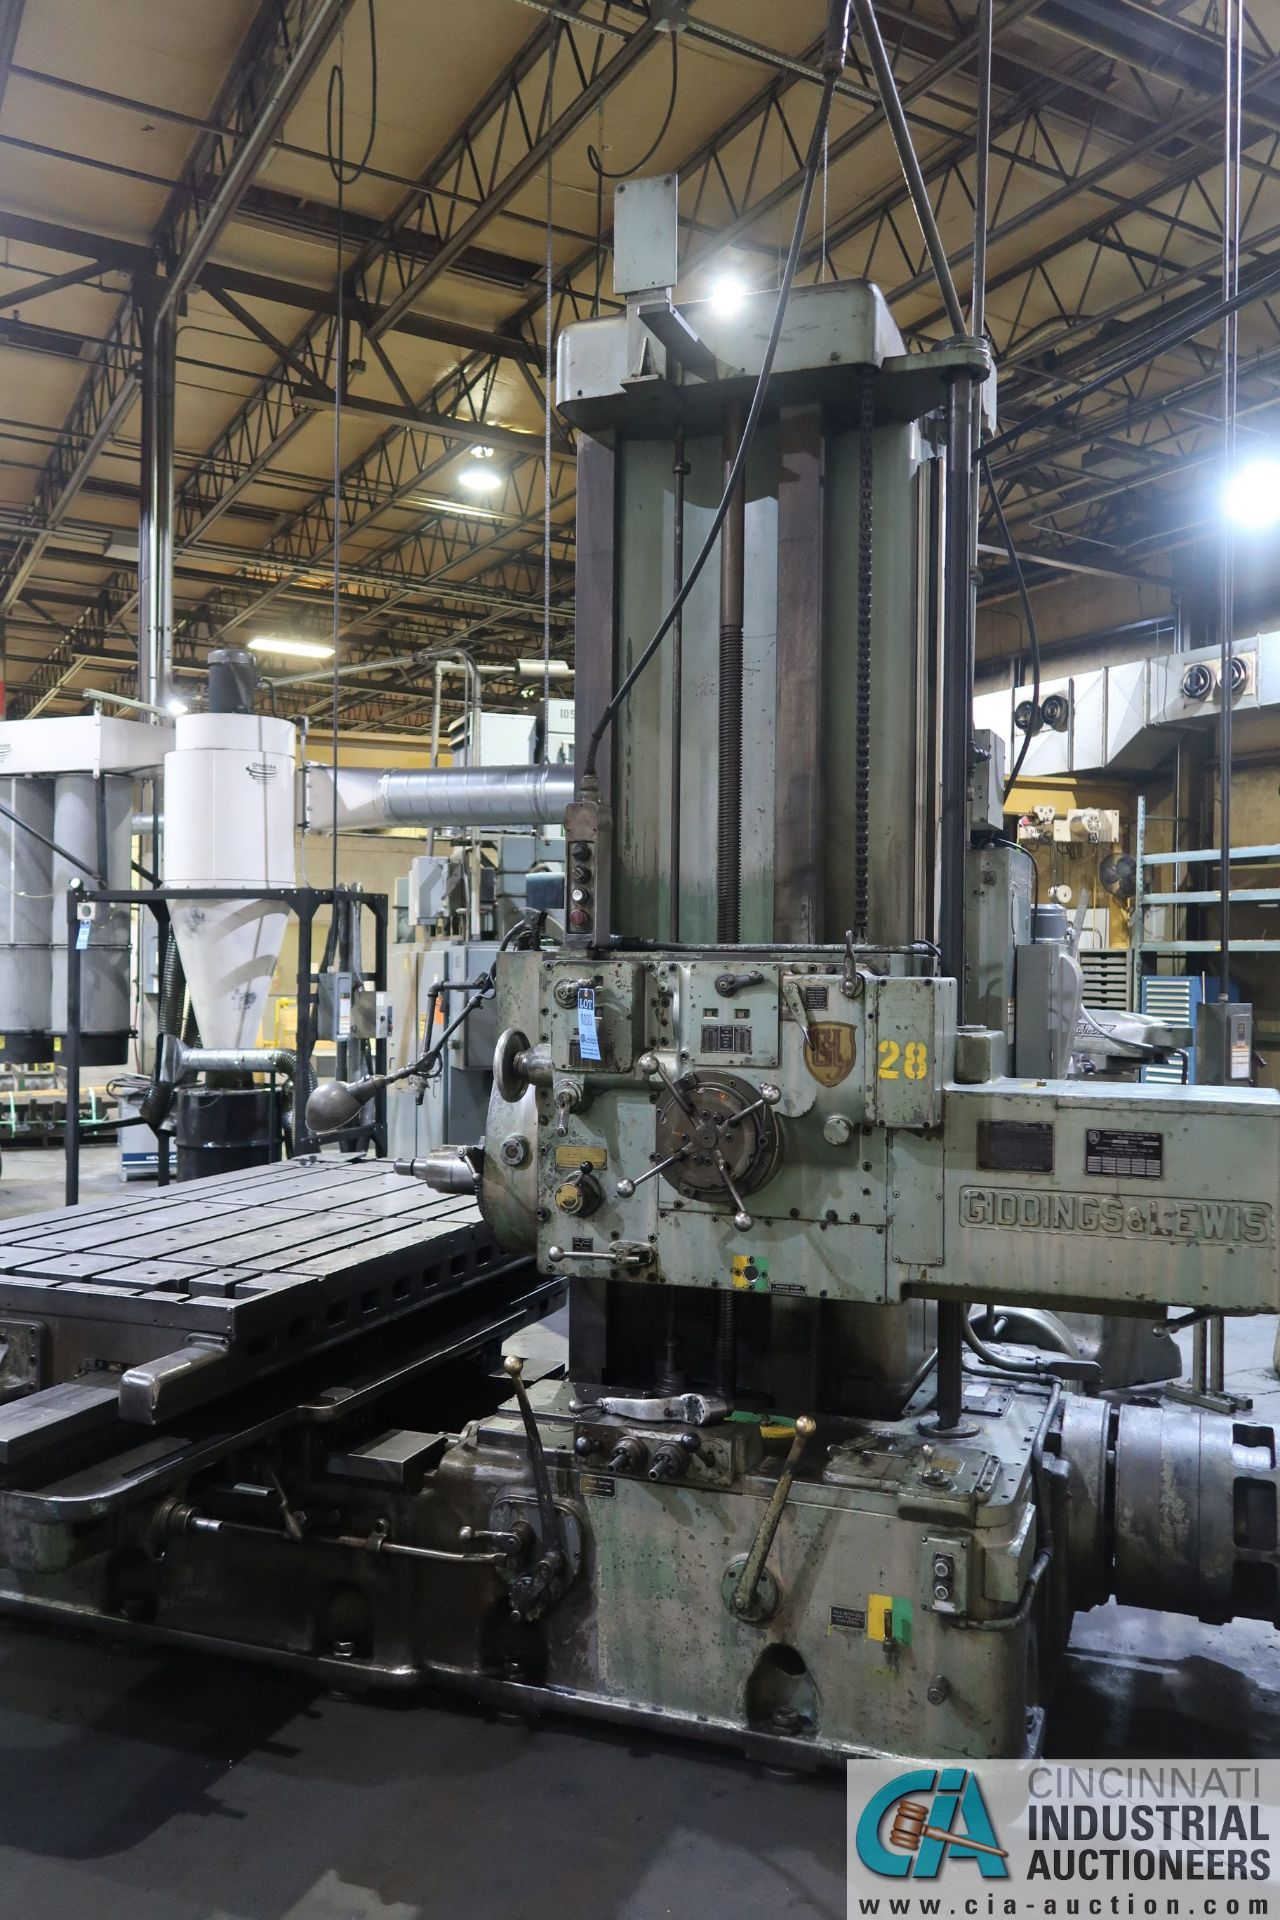 """GIDDINGS AND LEWIS MODEL 350T HORIZONTAL BORING MILL; S/N 150-90-65, 4' X 7' TABLE WITH (2) 24"""" FACE - Image 4 of 16"""